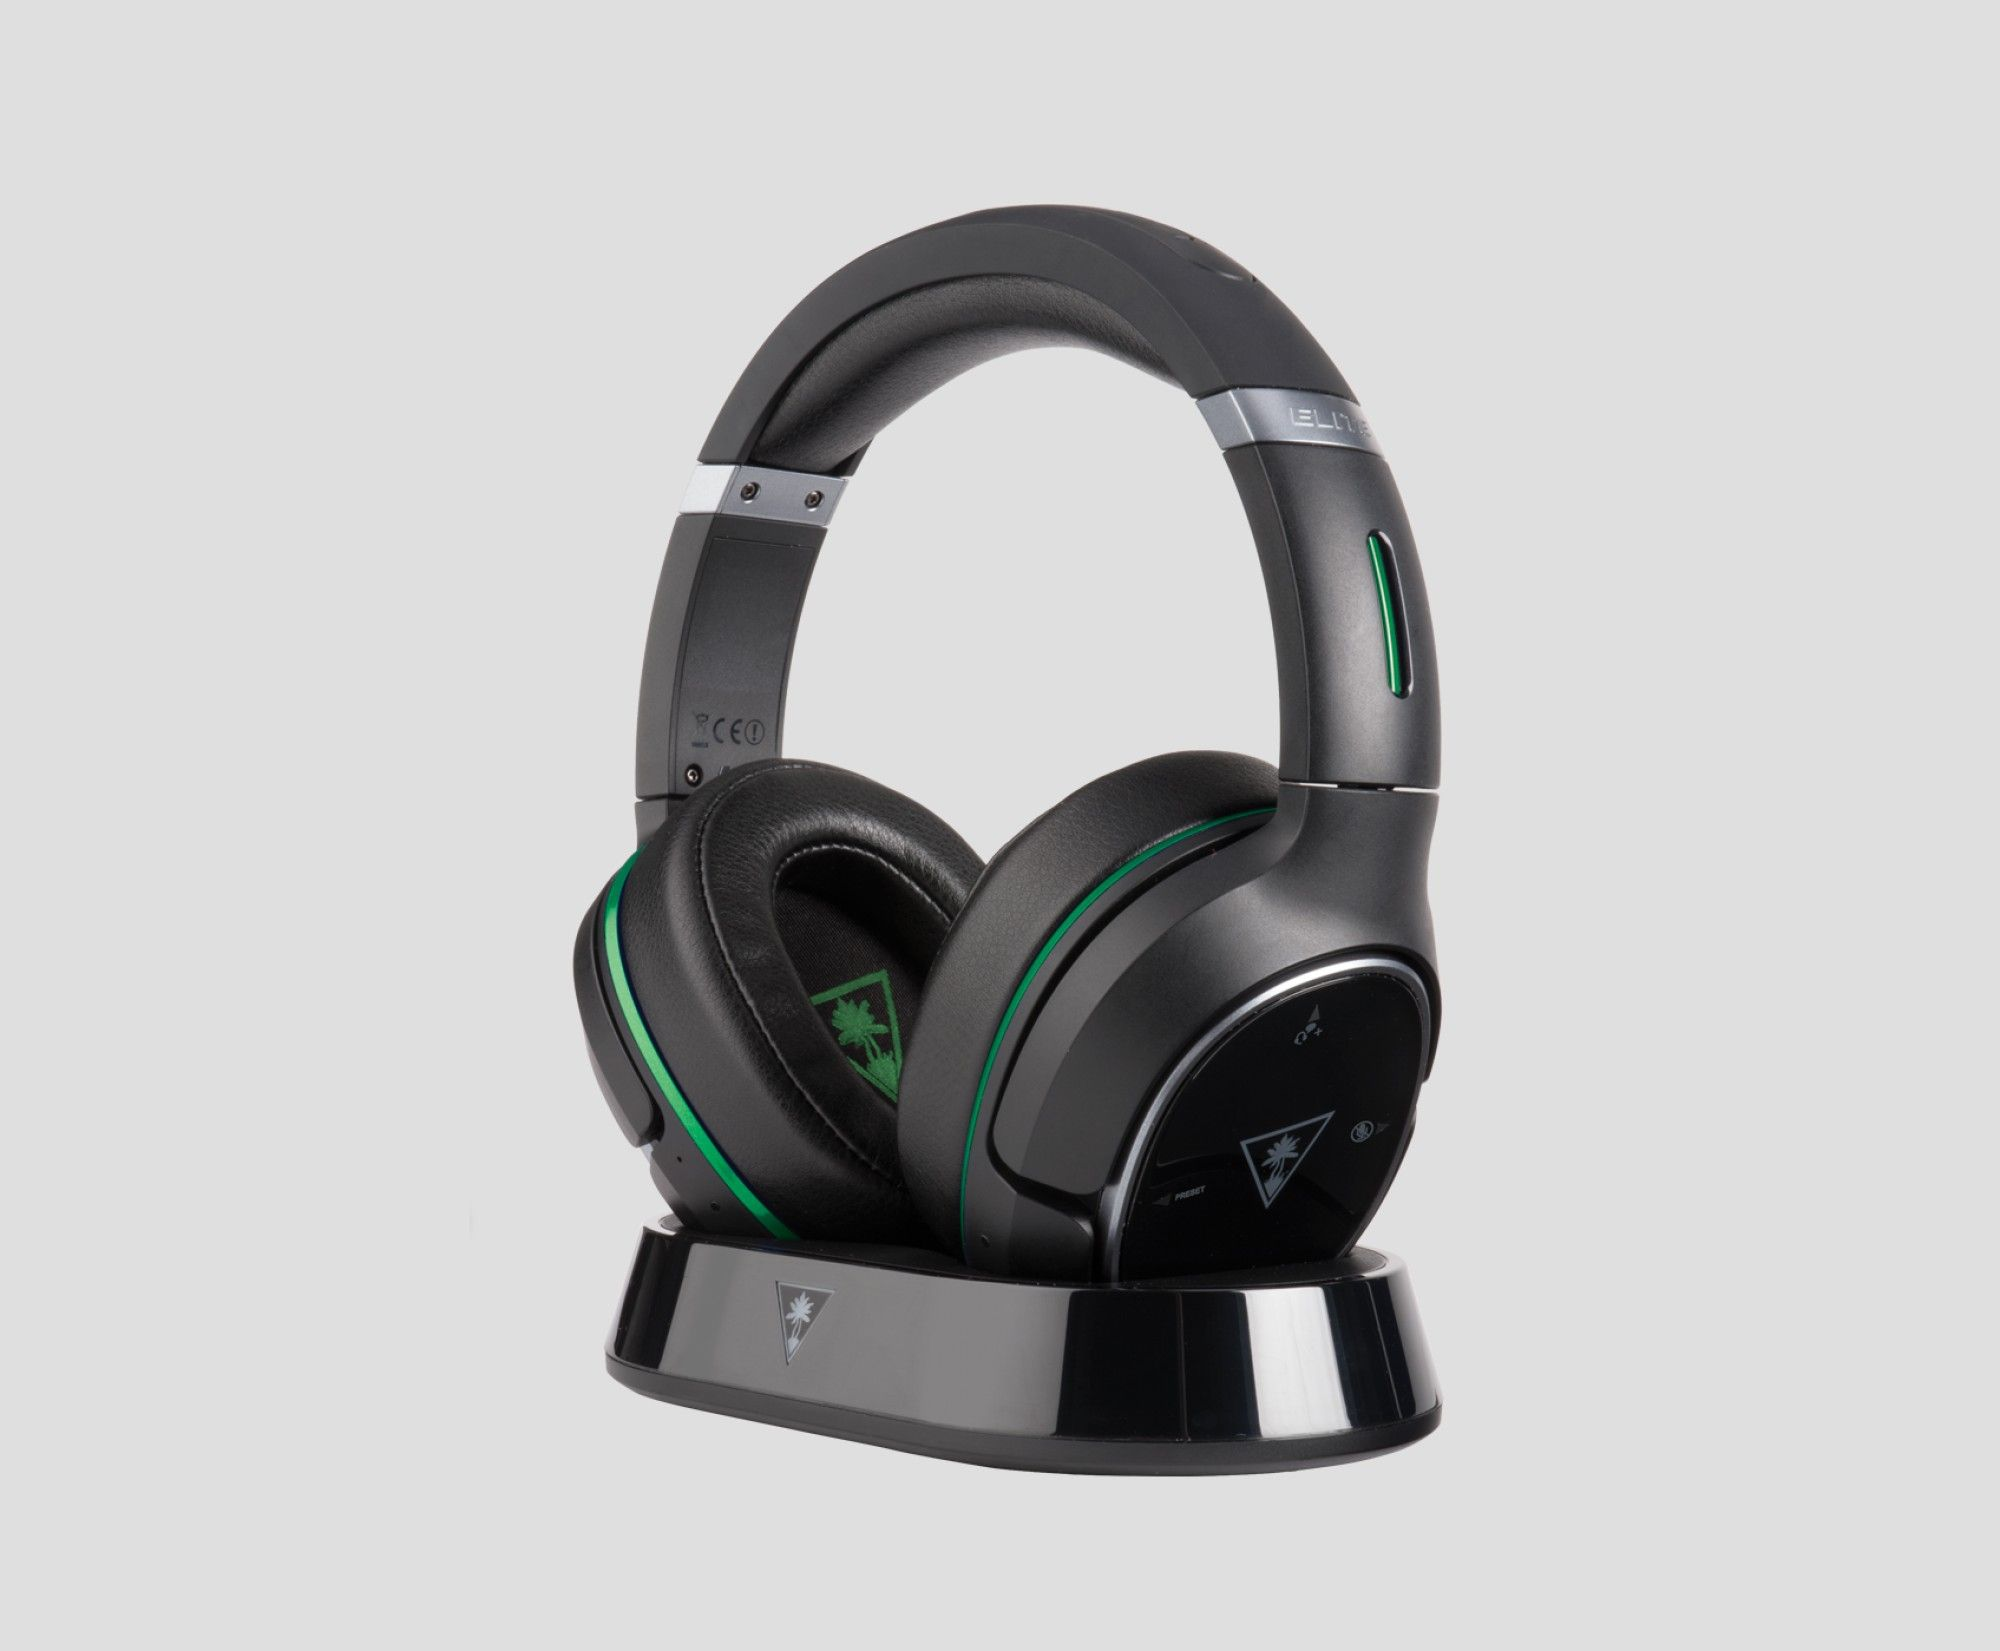 Wireless Noise Cancelling Dts Surround Sound Elite 800x Gaming Headset Turtle Beach Corporation Xbox One Headset Wireless Gaming Headset Turtle Beach